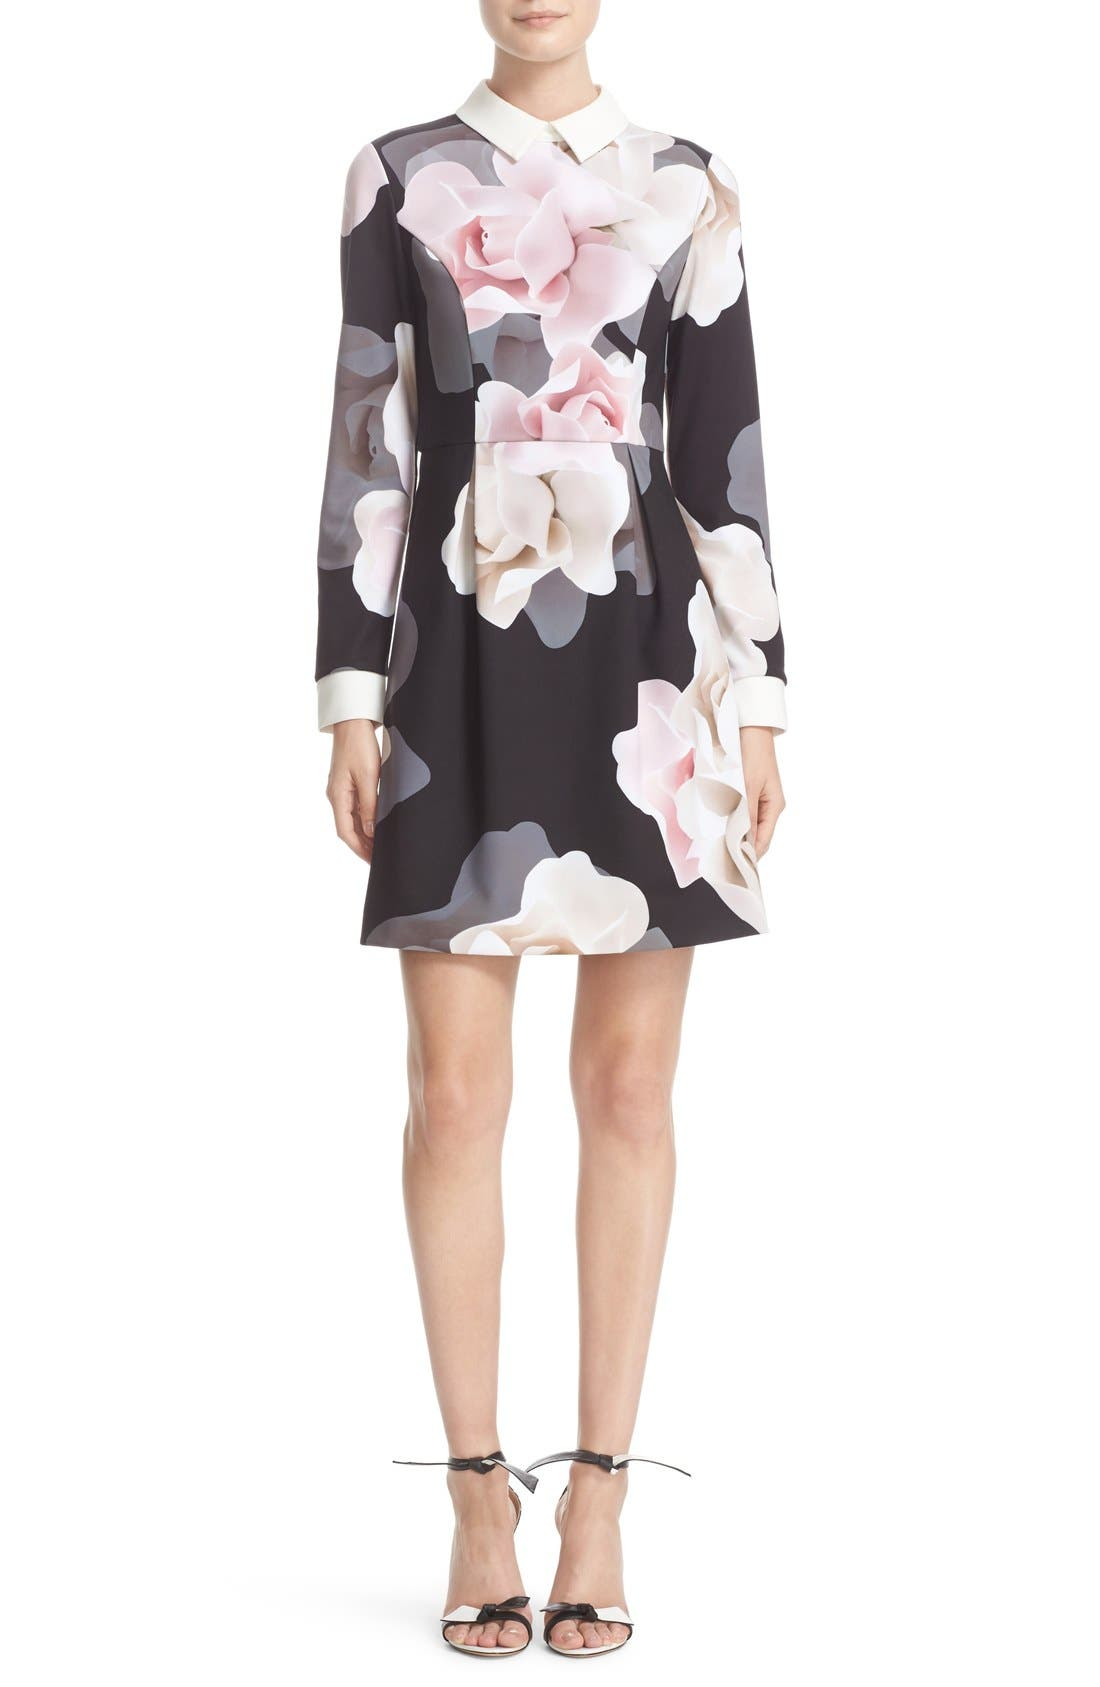 TED BAKER LONDON Porcelain Rose Print Contrast Trim Fit & Flare Dress, Main, color, 001